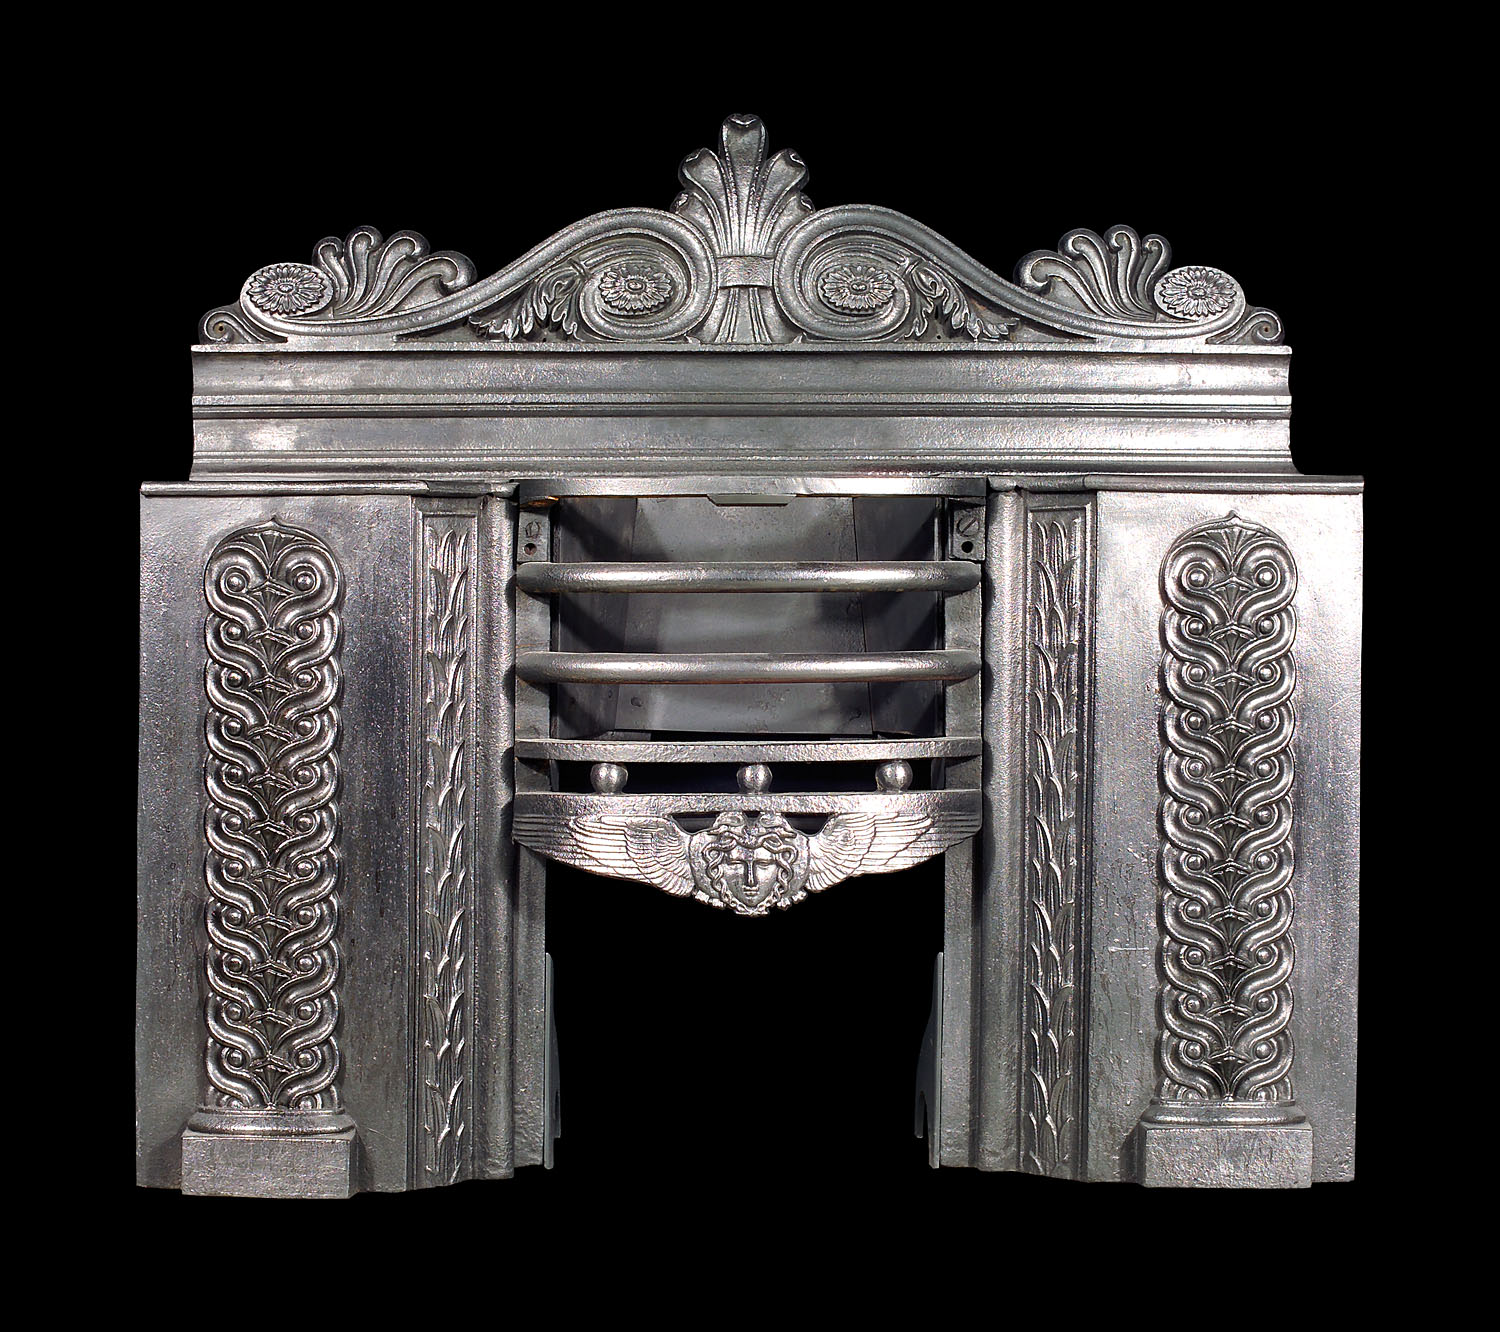 An antique Regency cast iron Hob Grate in the Greek Revival manner